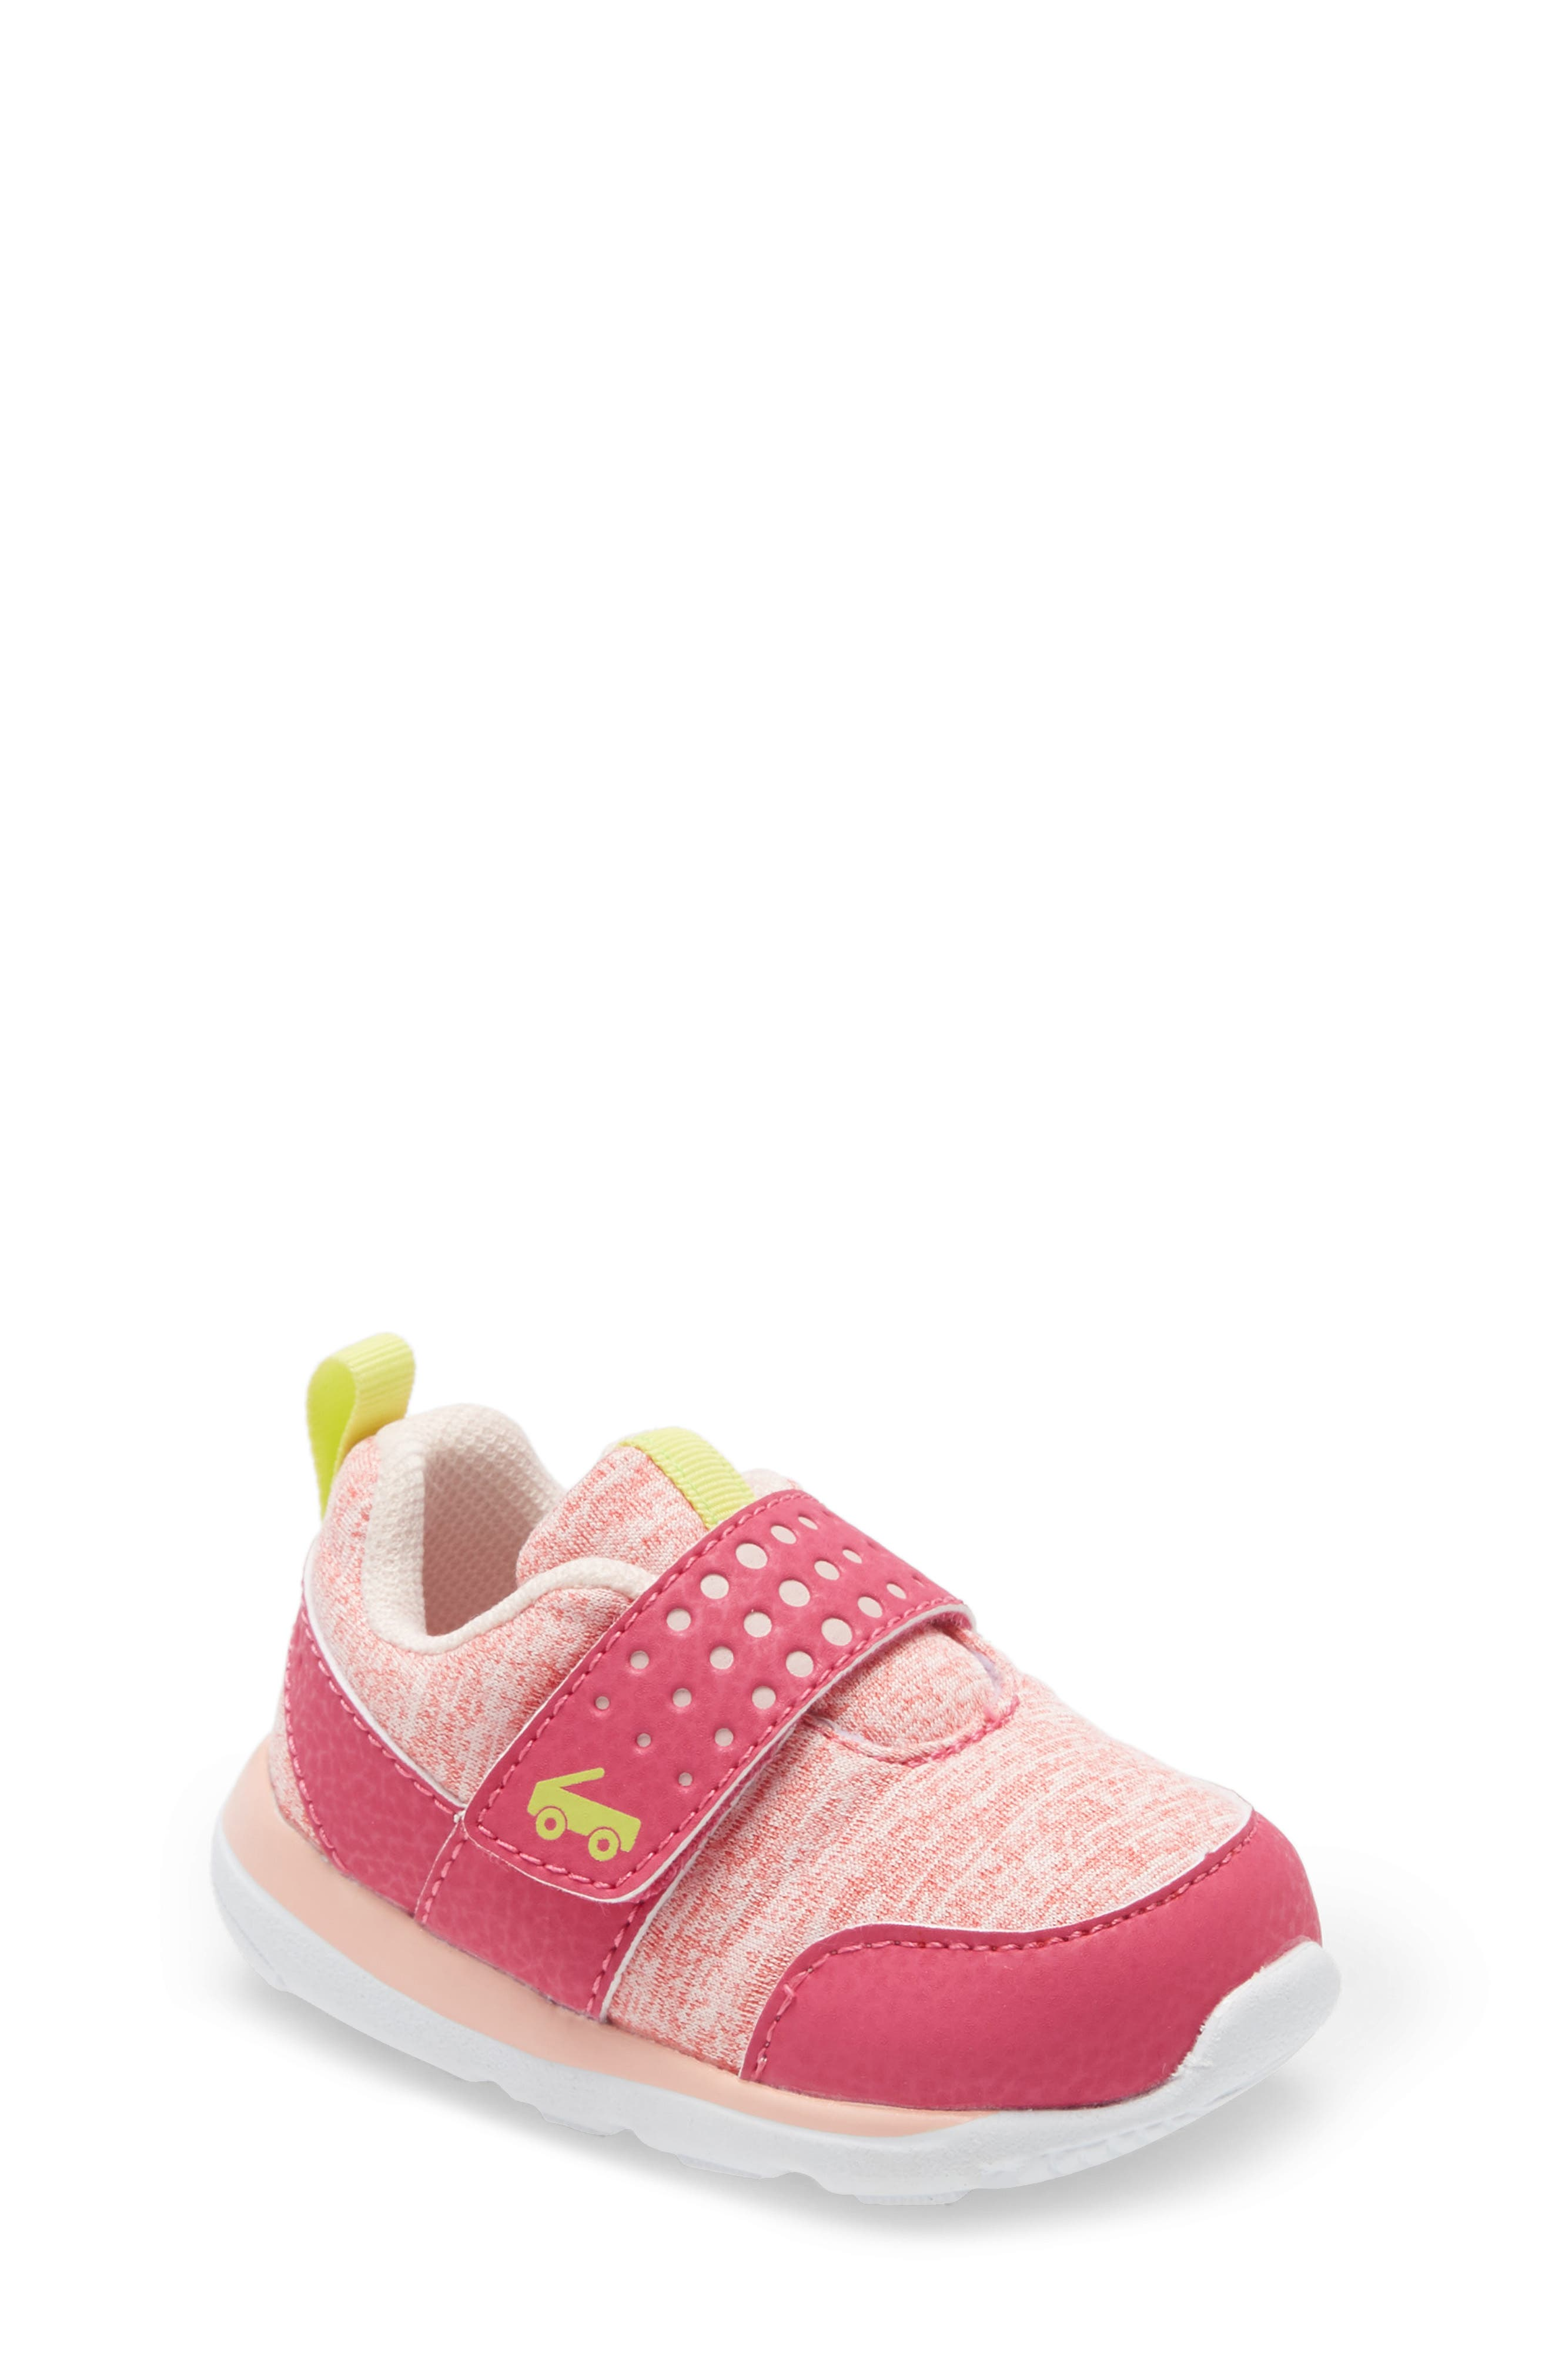 Baby Boys' Shoes   Nordstrom Rack